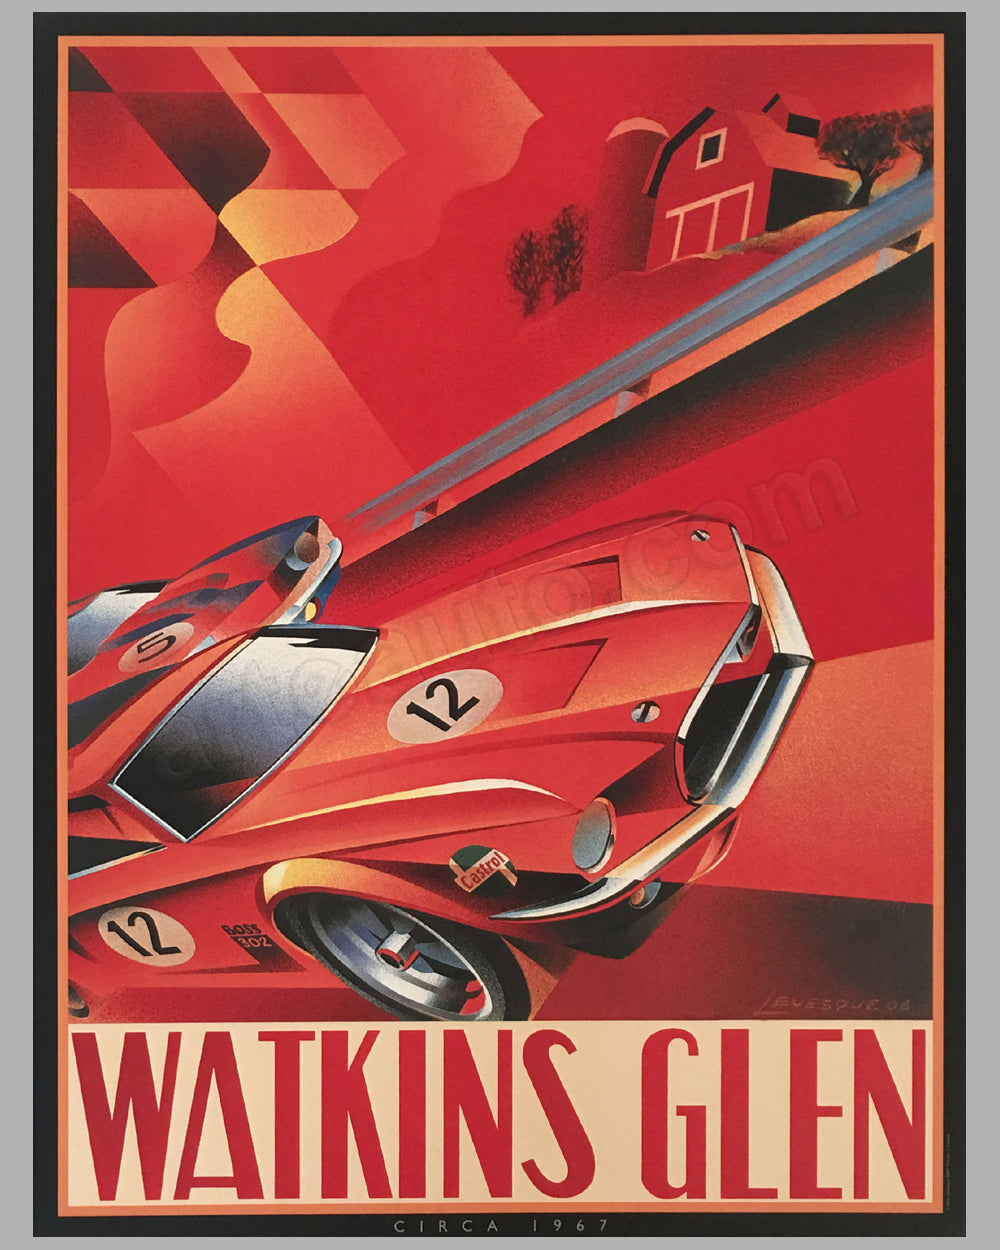 Watkins Glen poster by Alain Lévesque